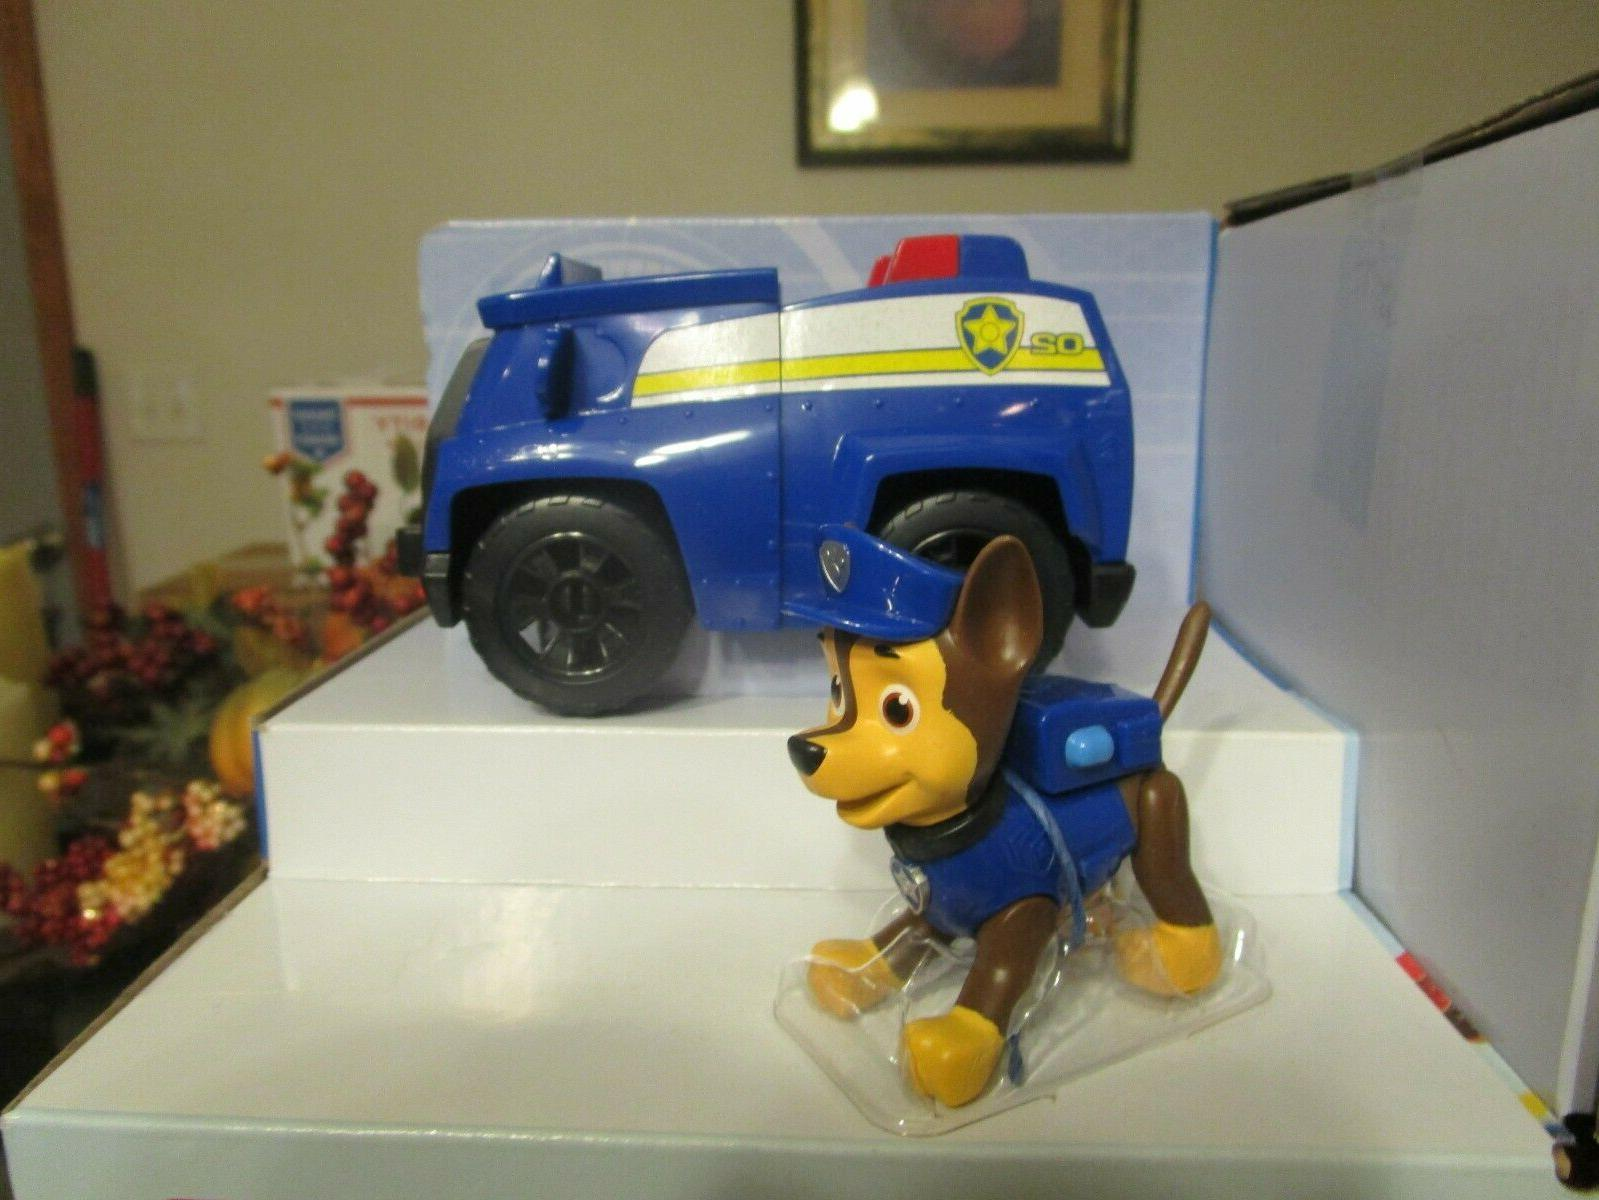 Paw Tower + Chase Vehicle, Lights Kid